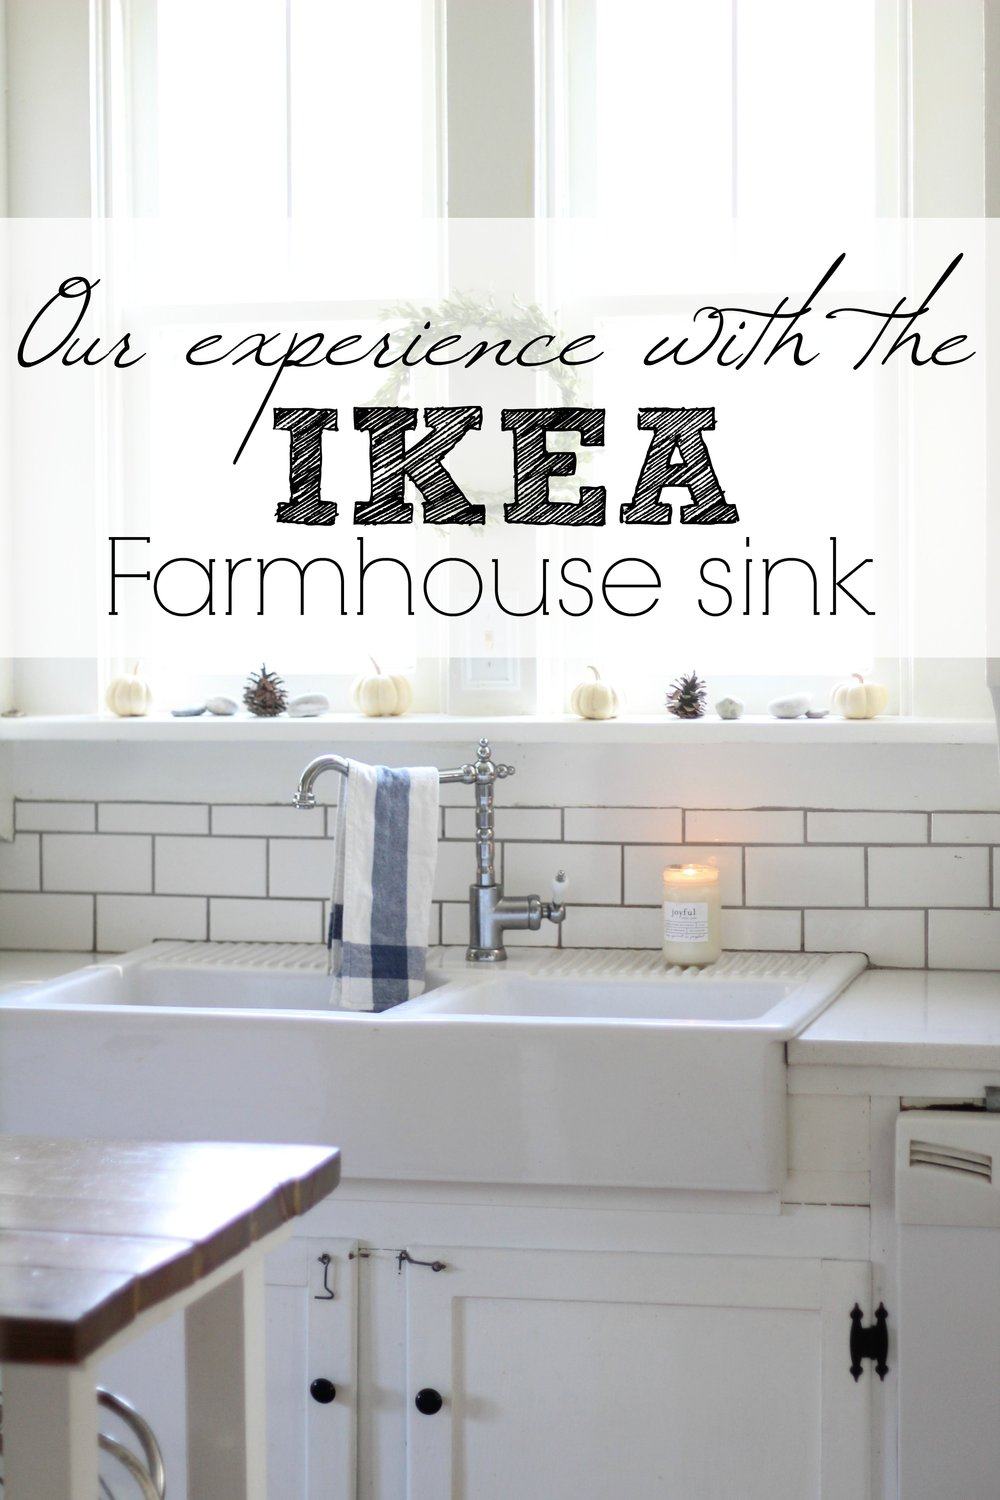 Interior Ikea Apron Front Sink our experience with the ikea domsjo double bowl farmhouse sink rewind back a few years ago when i started thinking about redoing whole kitchen wasnt sure if money was in budget